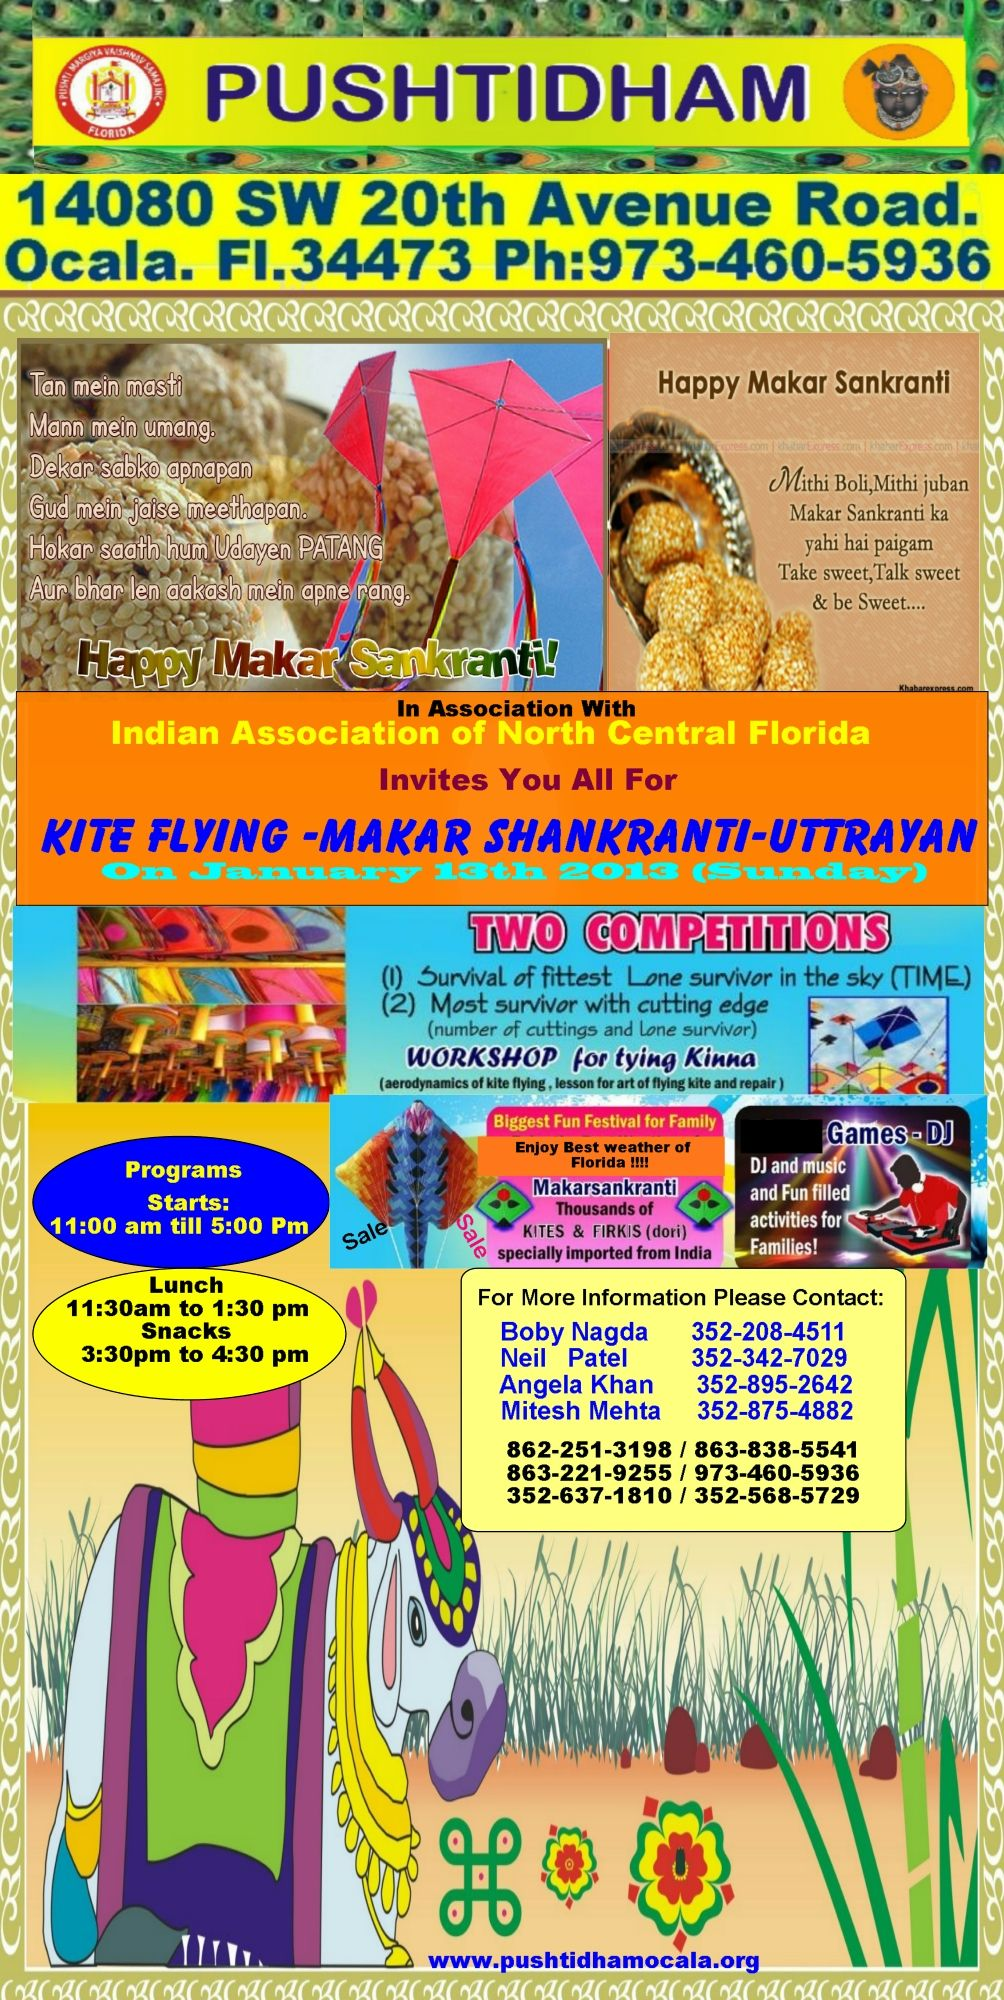 Join us for Kite flying  on 13th January 2013 from 11:00am